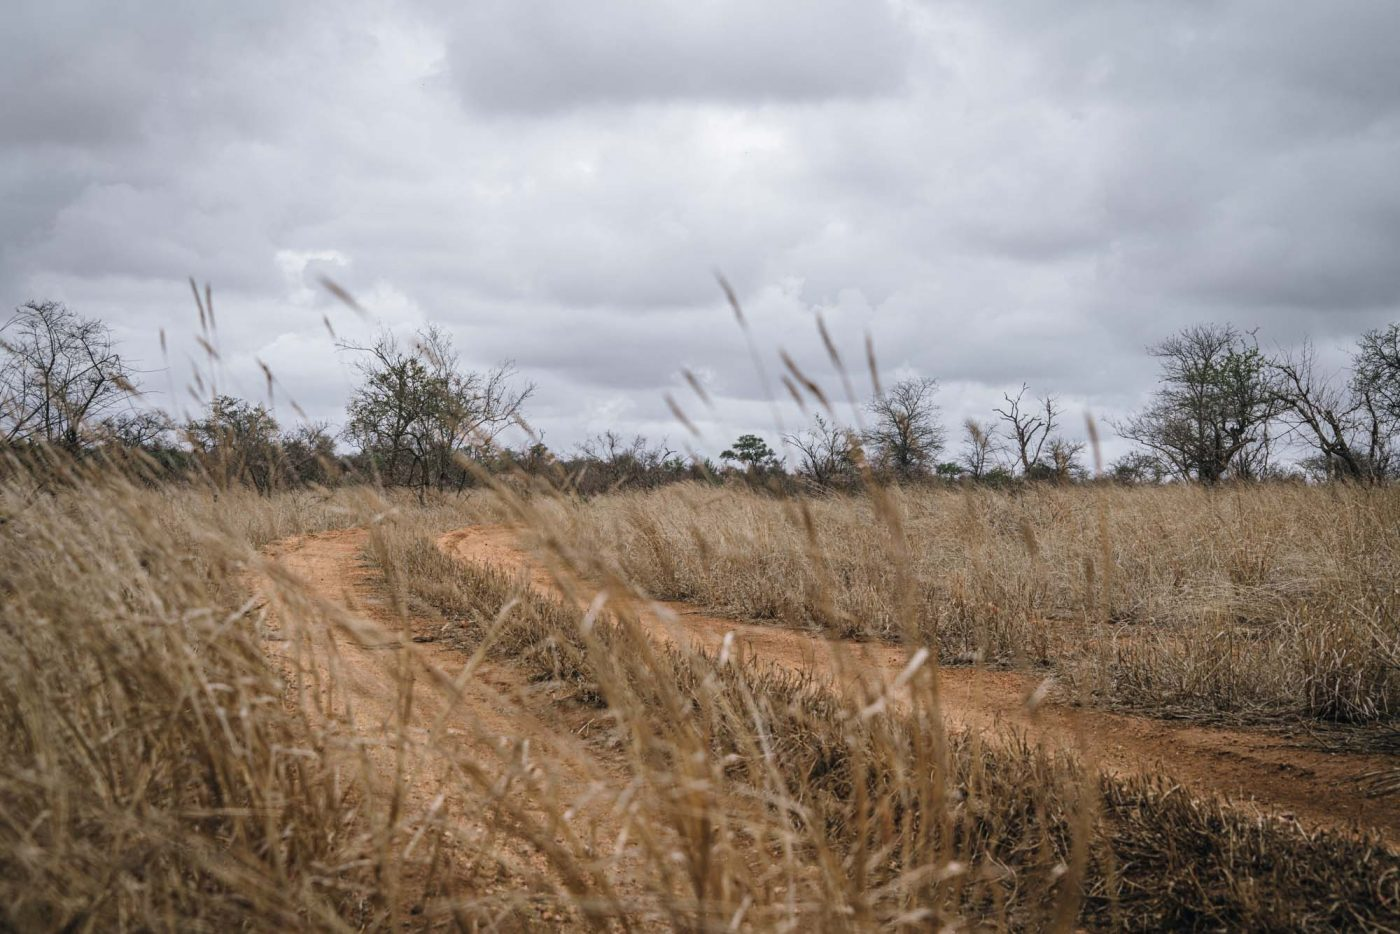 Unspoiled wilderness of Timbavati Nature Reserve